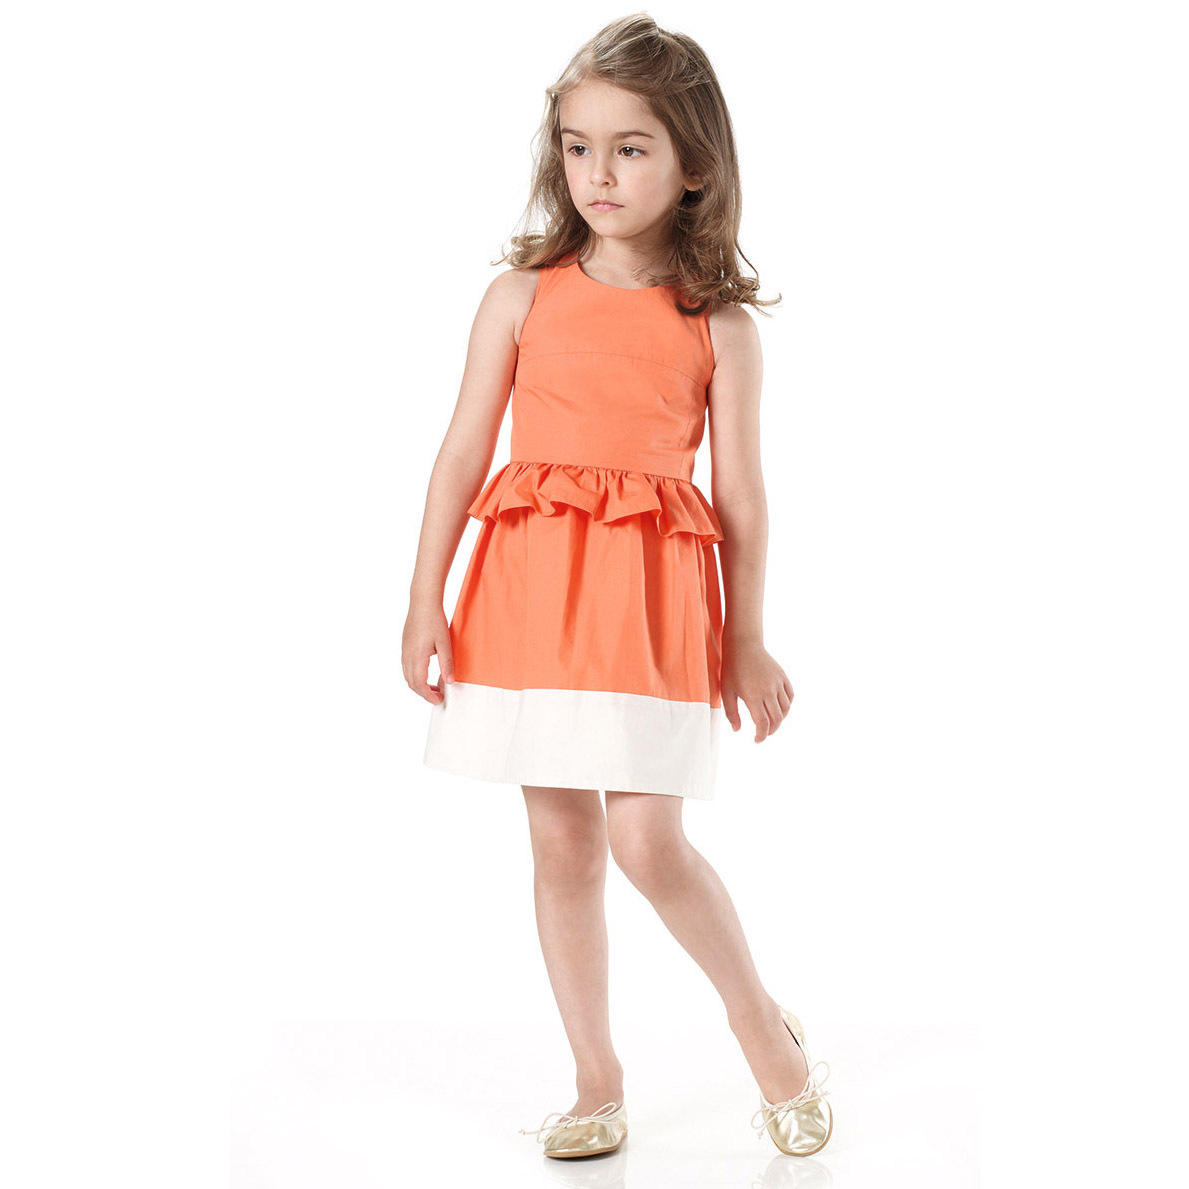 a57ec6a67a4 Detail Feedback Questions about Summer Girls Sleeveless Princess Orange Sundress  Kids Fashion Lotus Leaf Waist Party Prom Child Dress For Children Clothing  ...